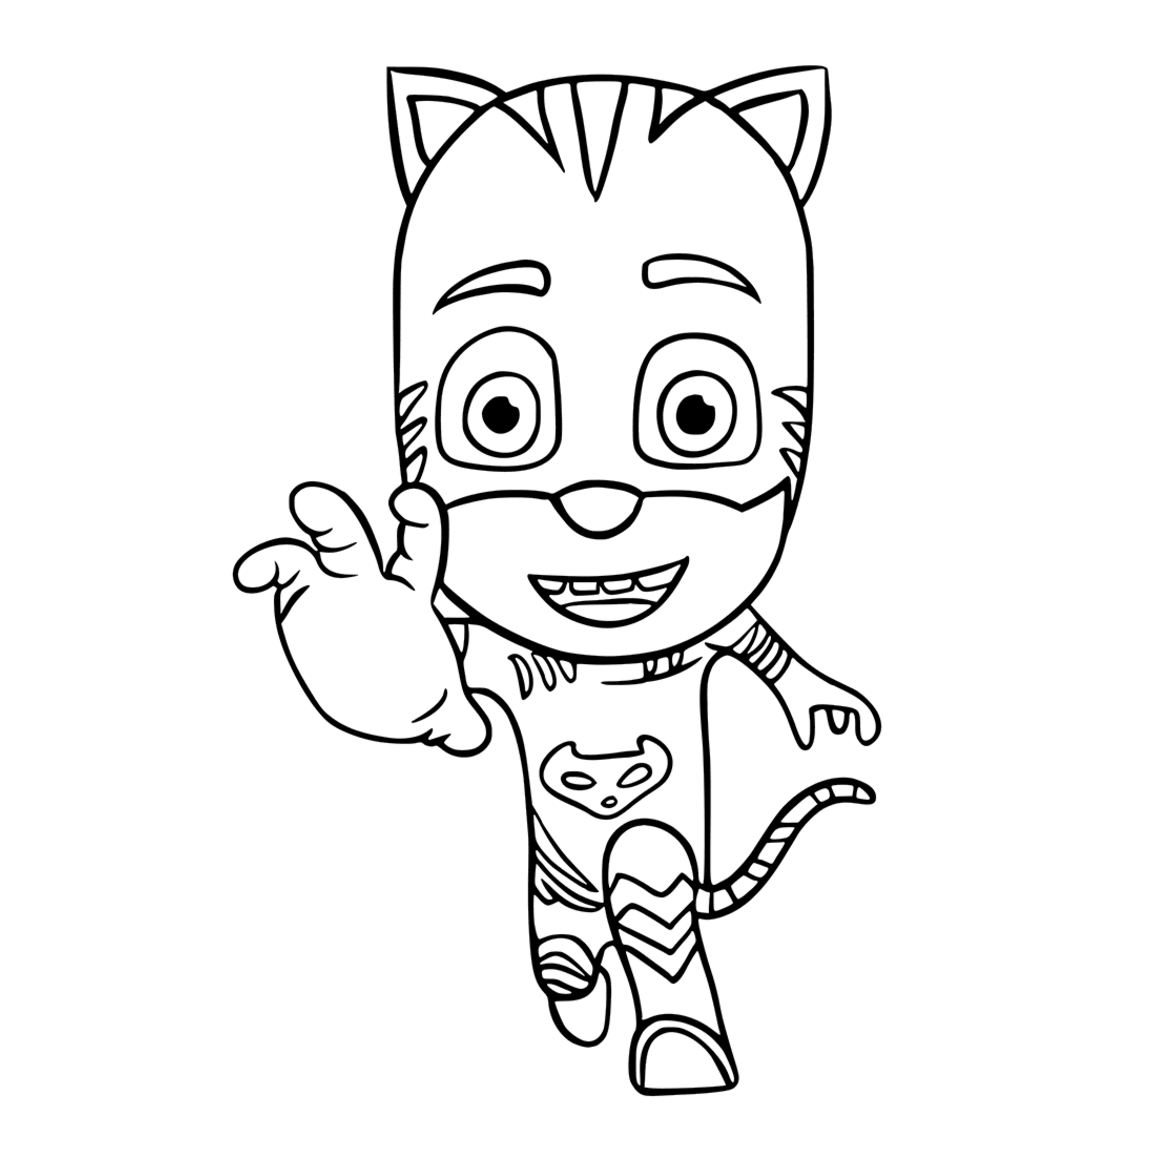 coloring pages t pj masks coloring pages best coloring pages for kids